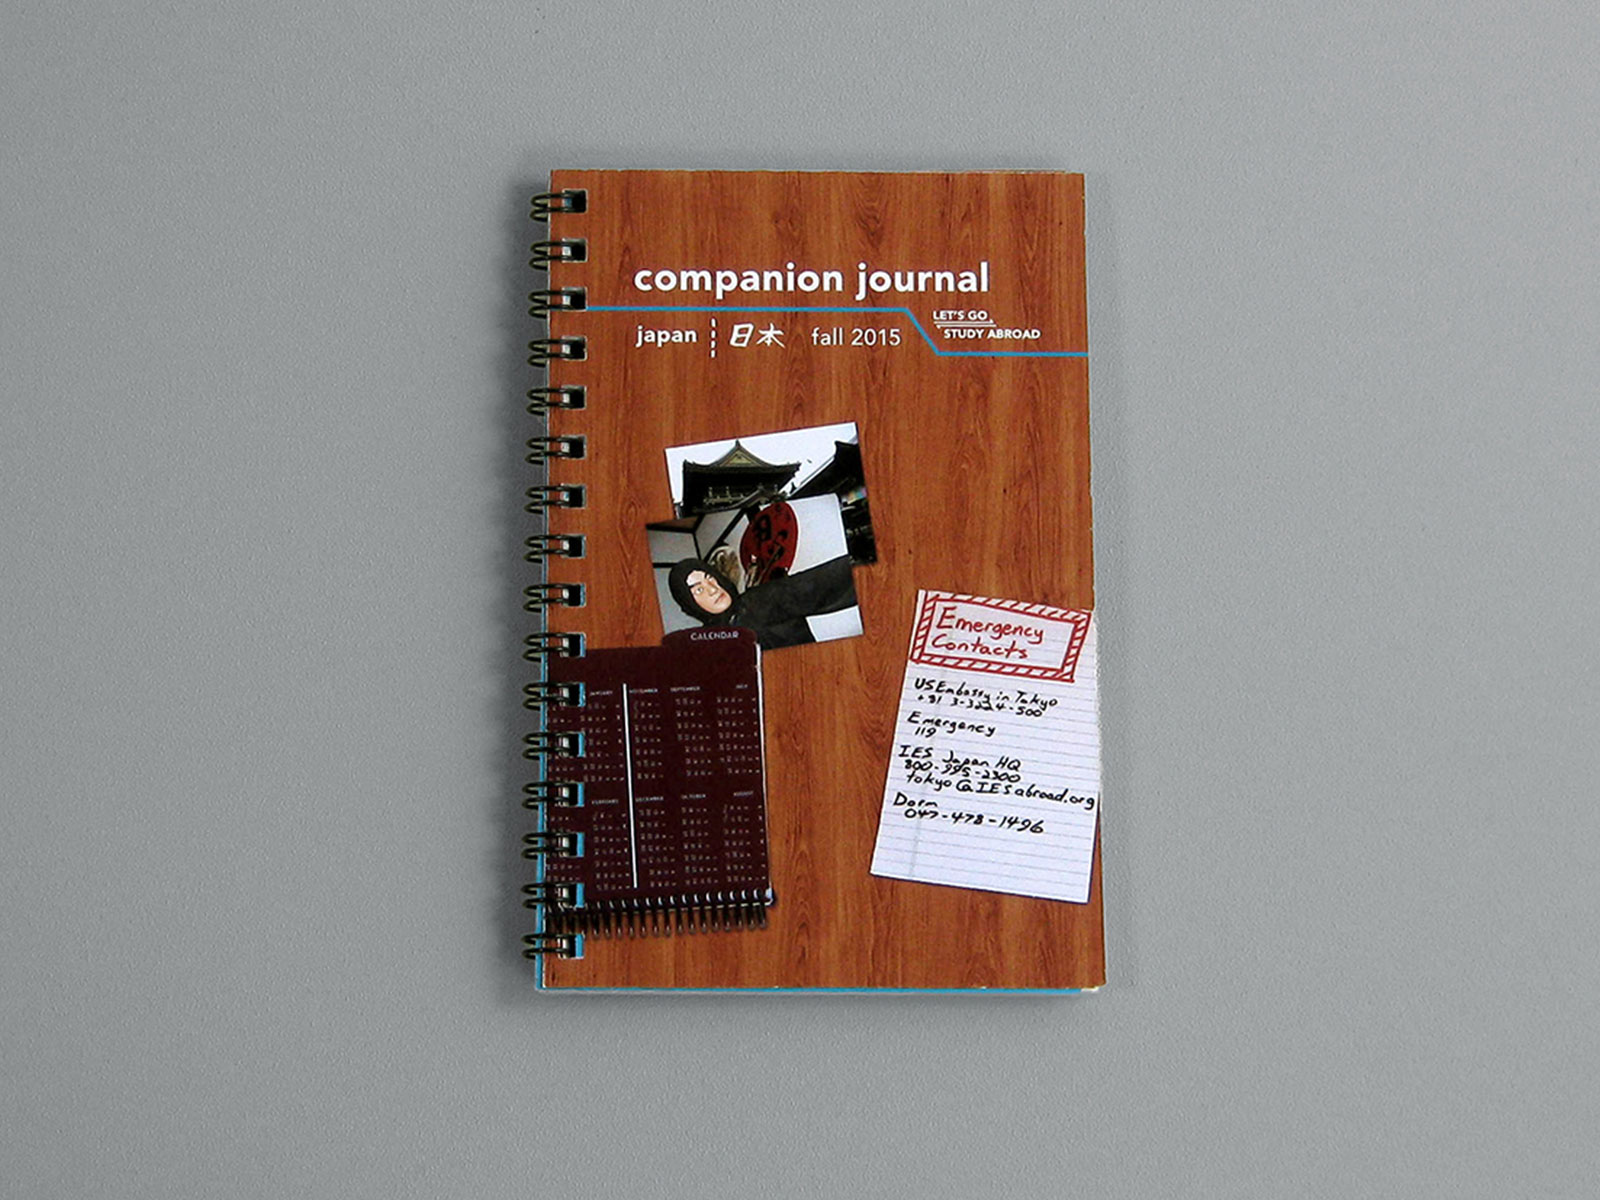 journal-cover-front_1600x1200.jpg